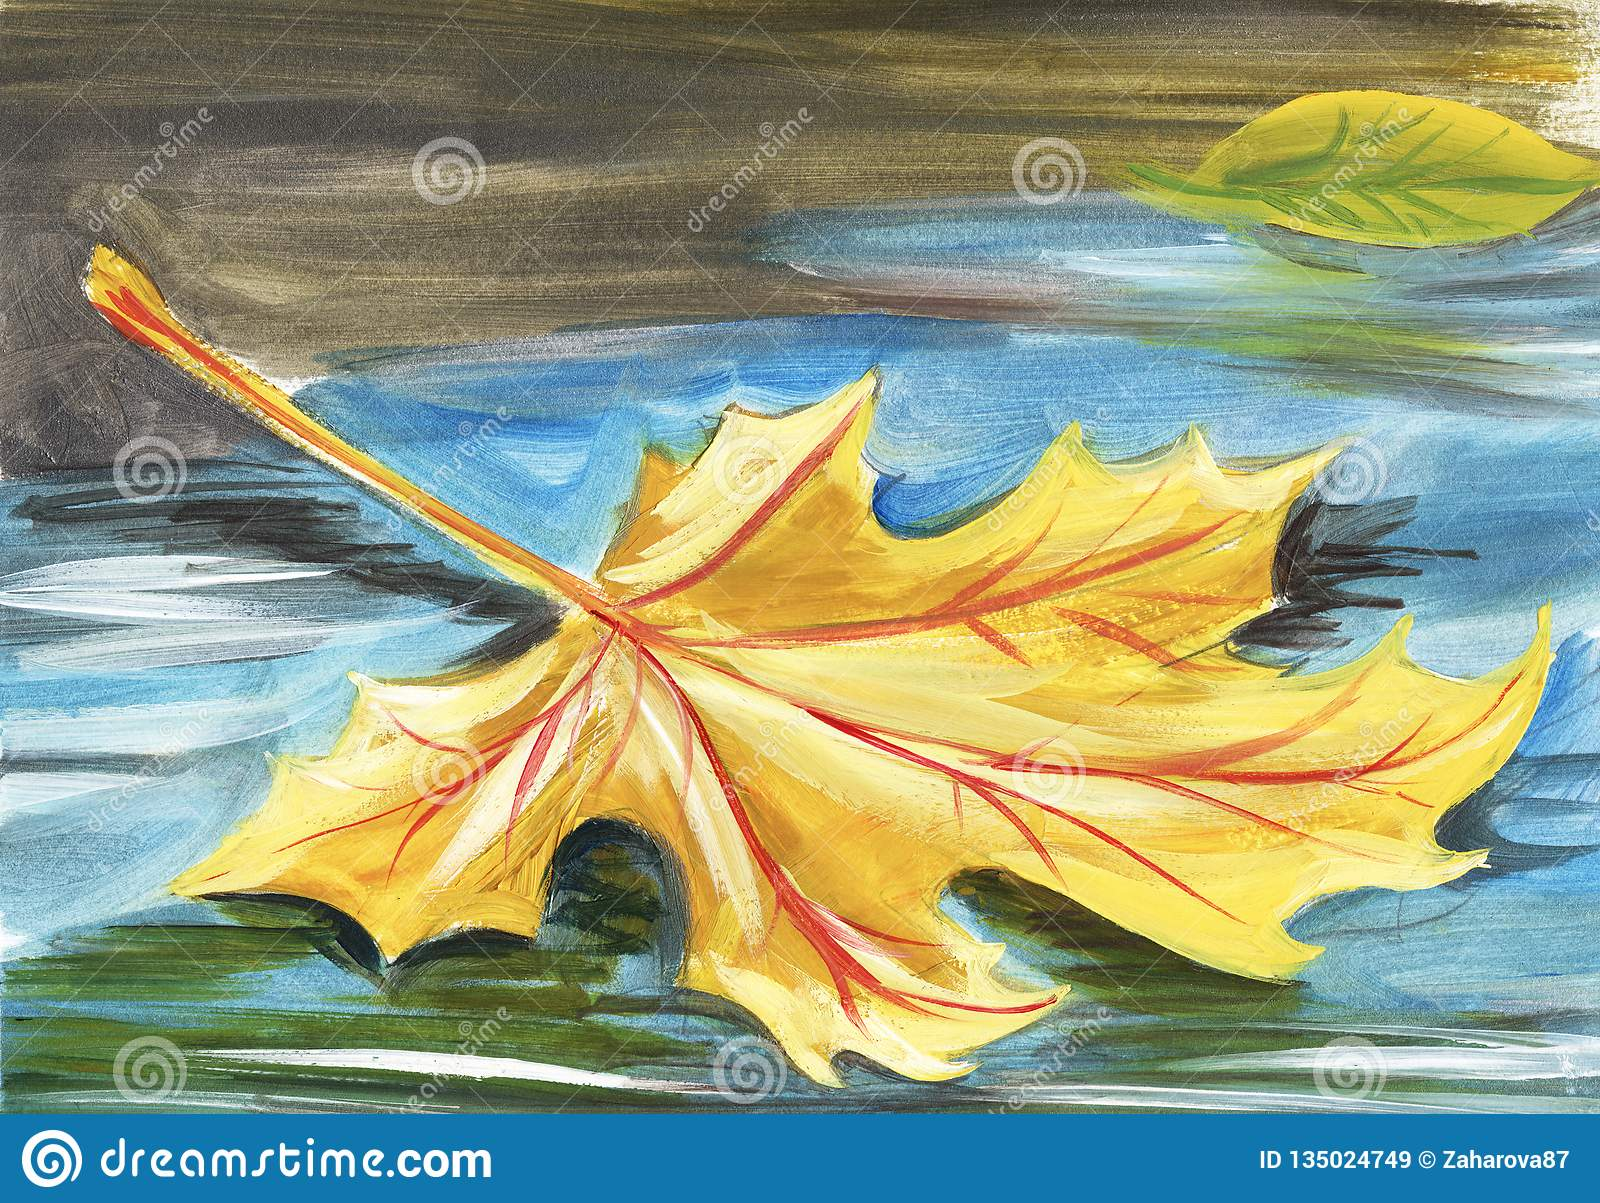 Autumn Artwork Leaves Drawing